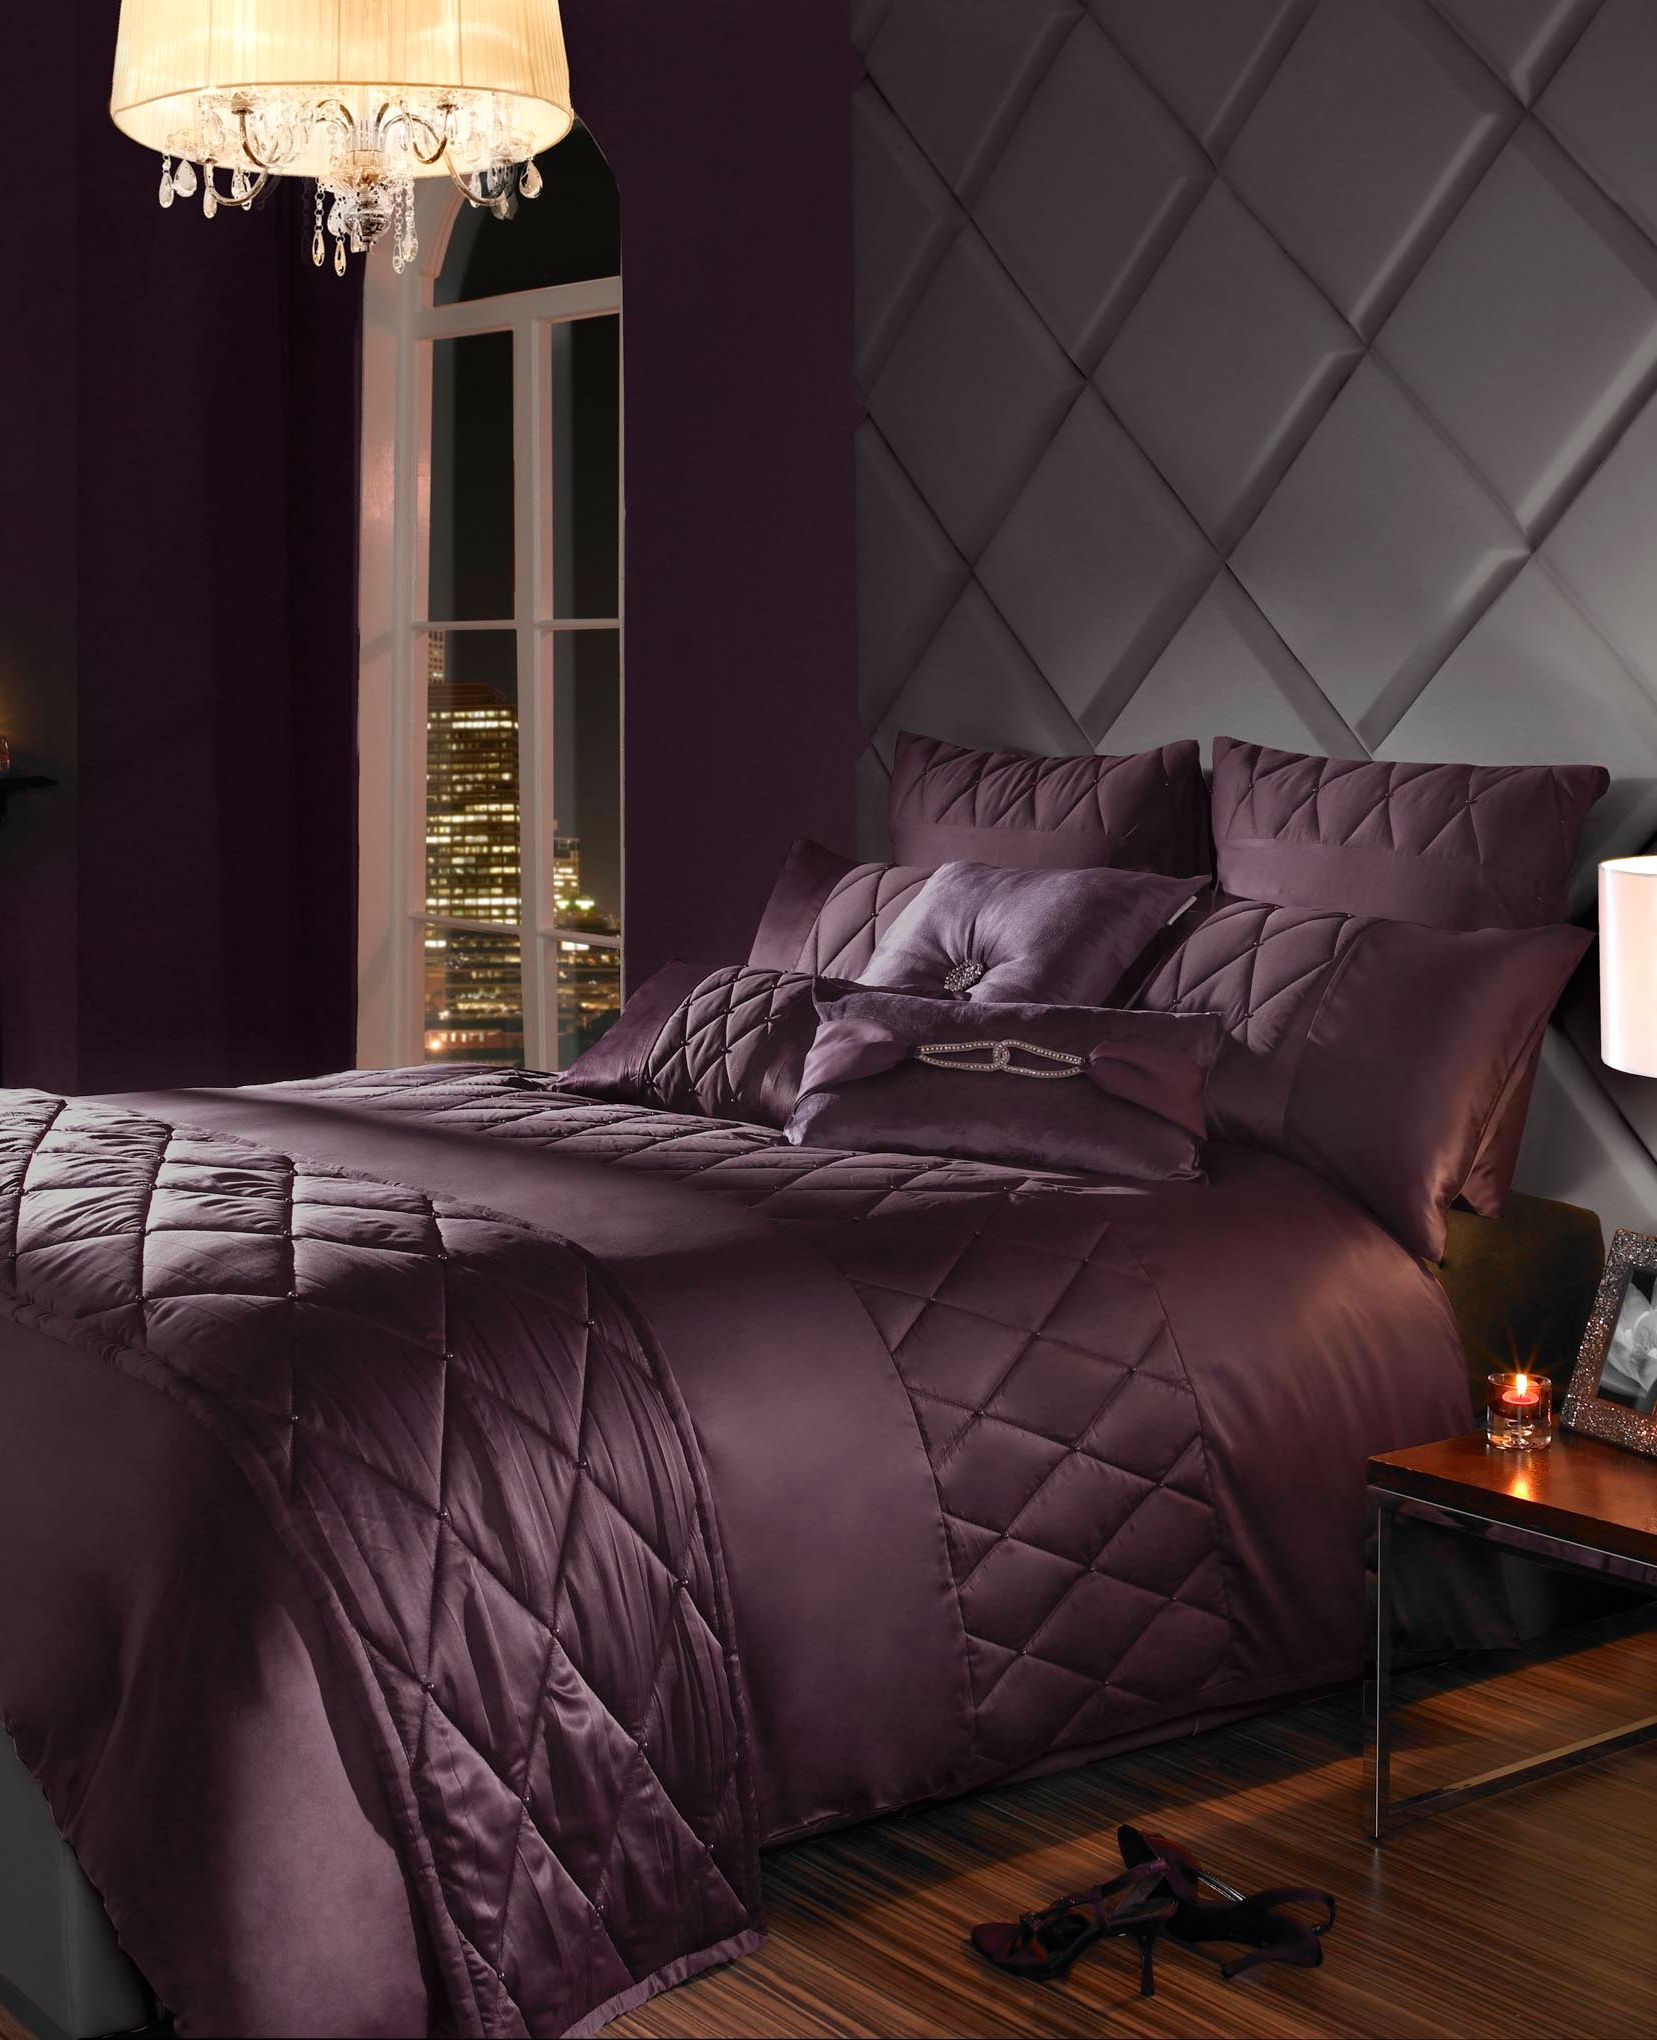 Liverna super king duvet cover damson